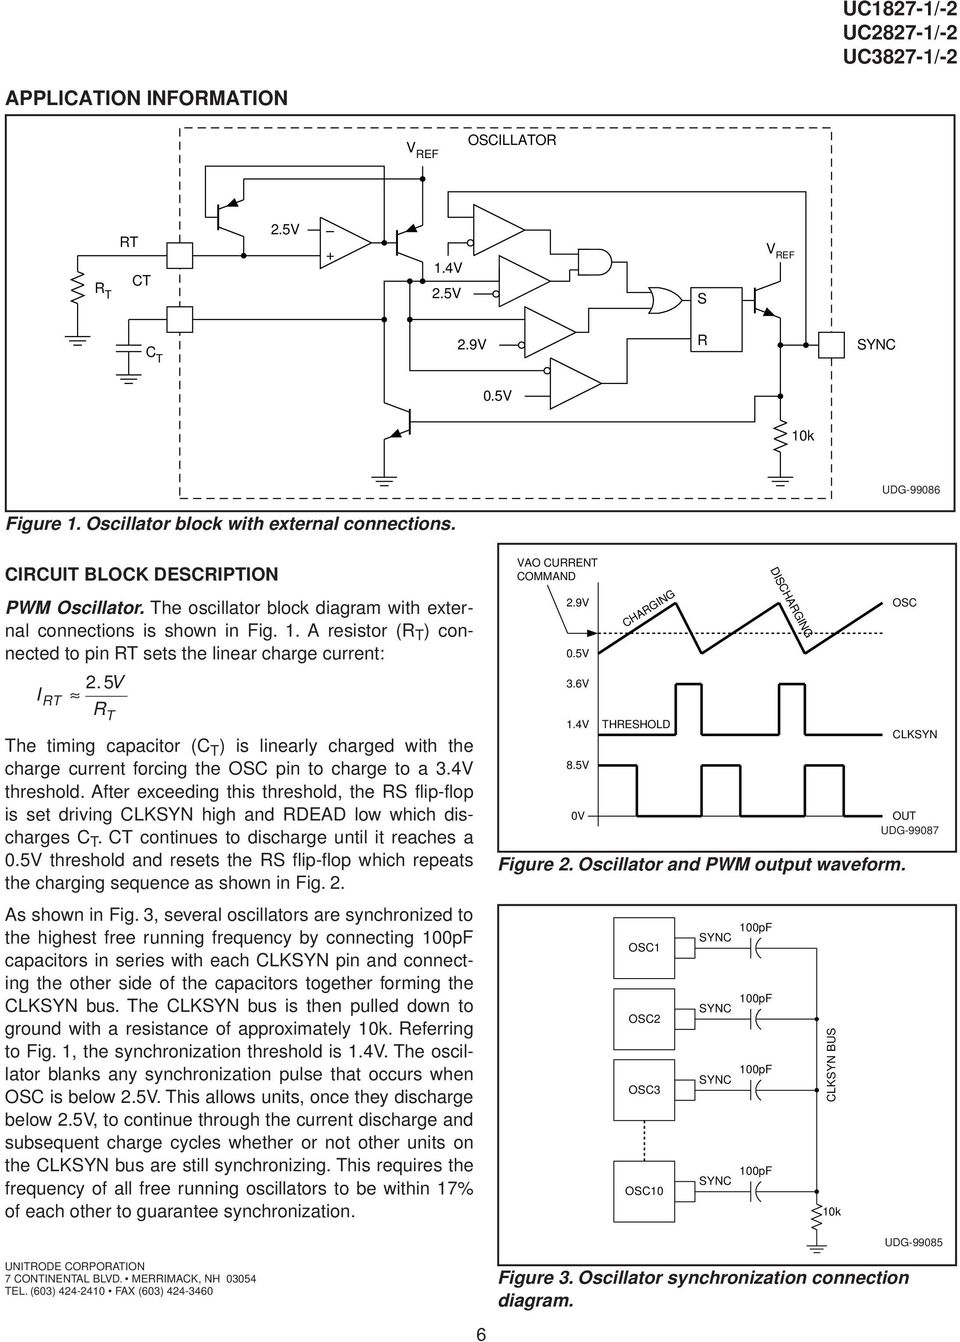 Buck Current Voltage Fed Push Pull Pwm Controllers Pdf Lm2576 In The Battery Charging Circuit Application R T Timing Capacitor C Is Linearly Charged With Charge Forcing